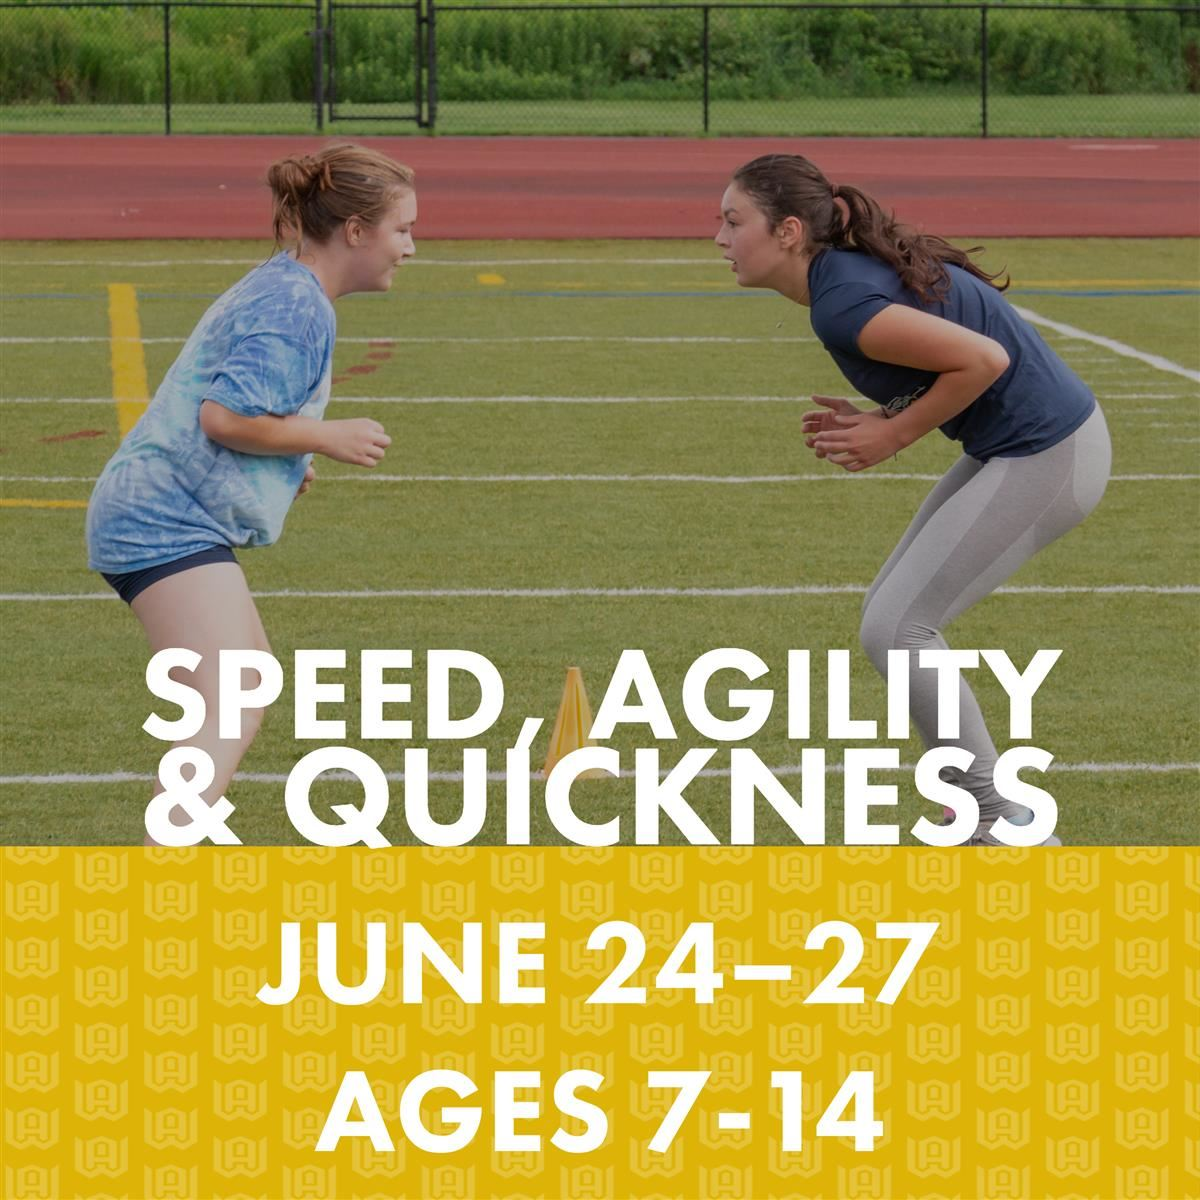 Speed, Agility, & Quickness